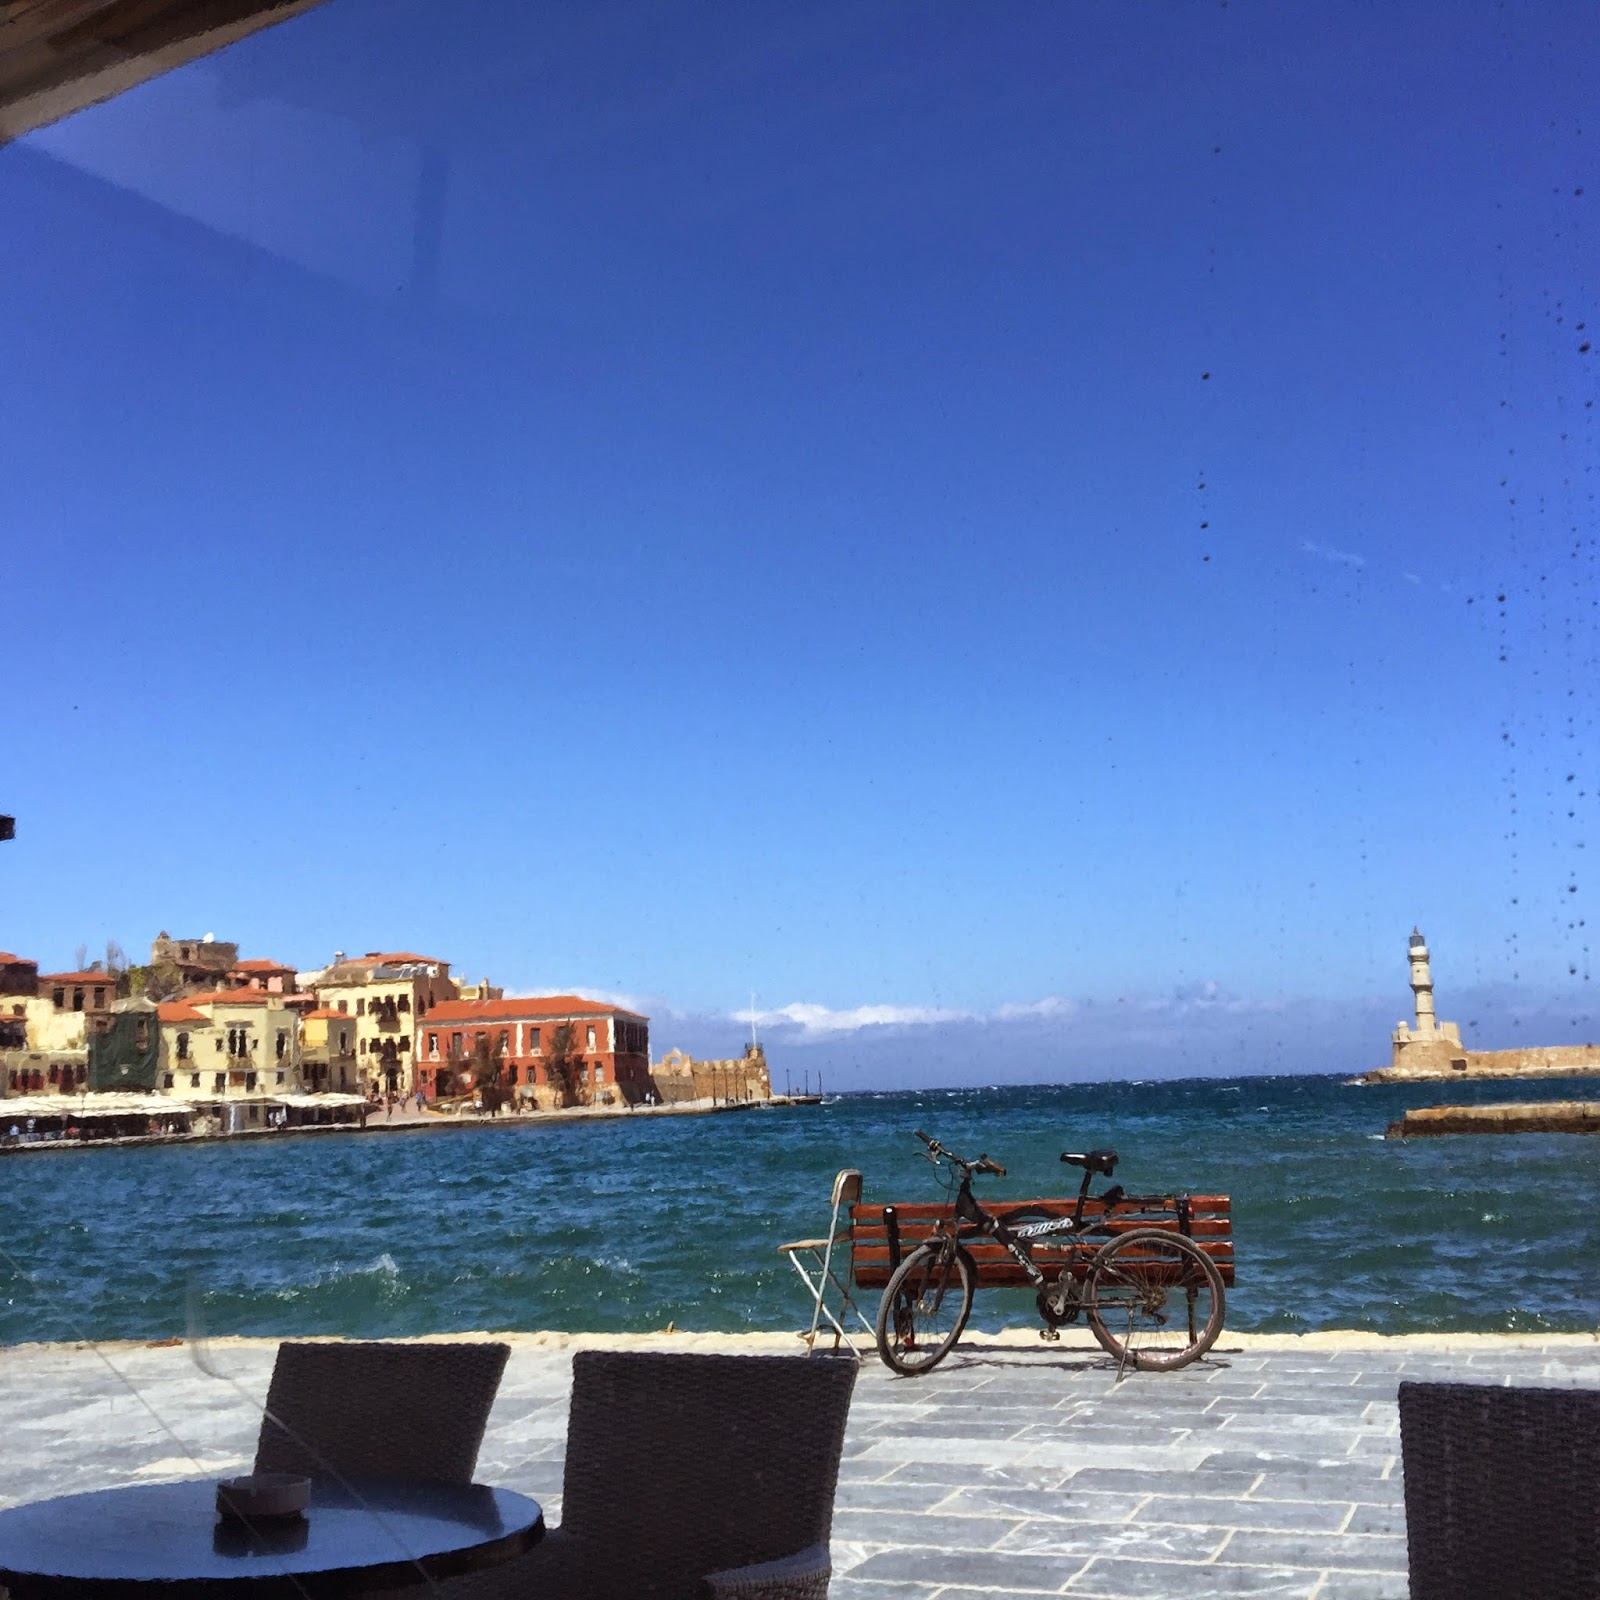 Waterfront dining in Chania on Greek island of Crete.